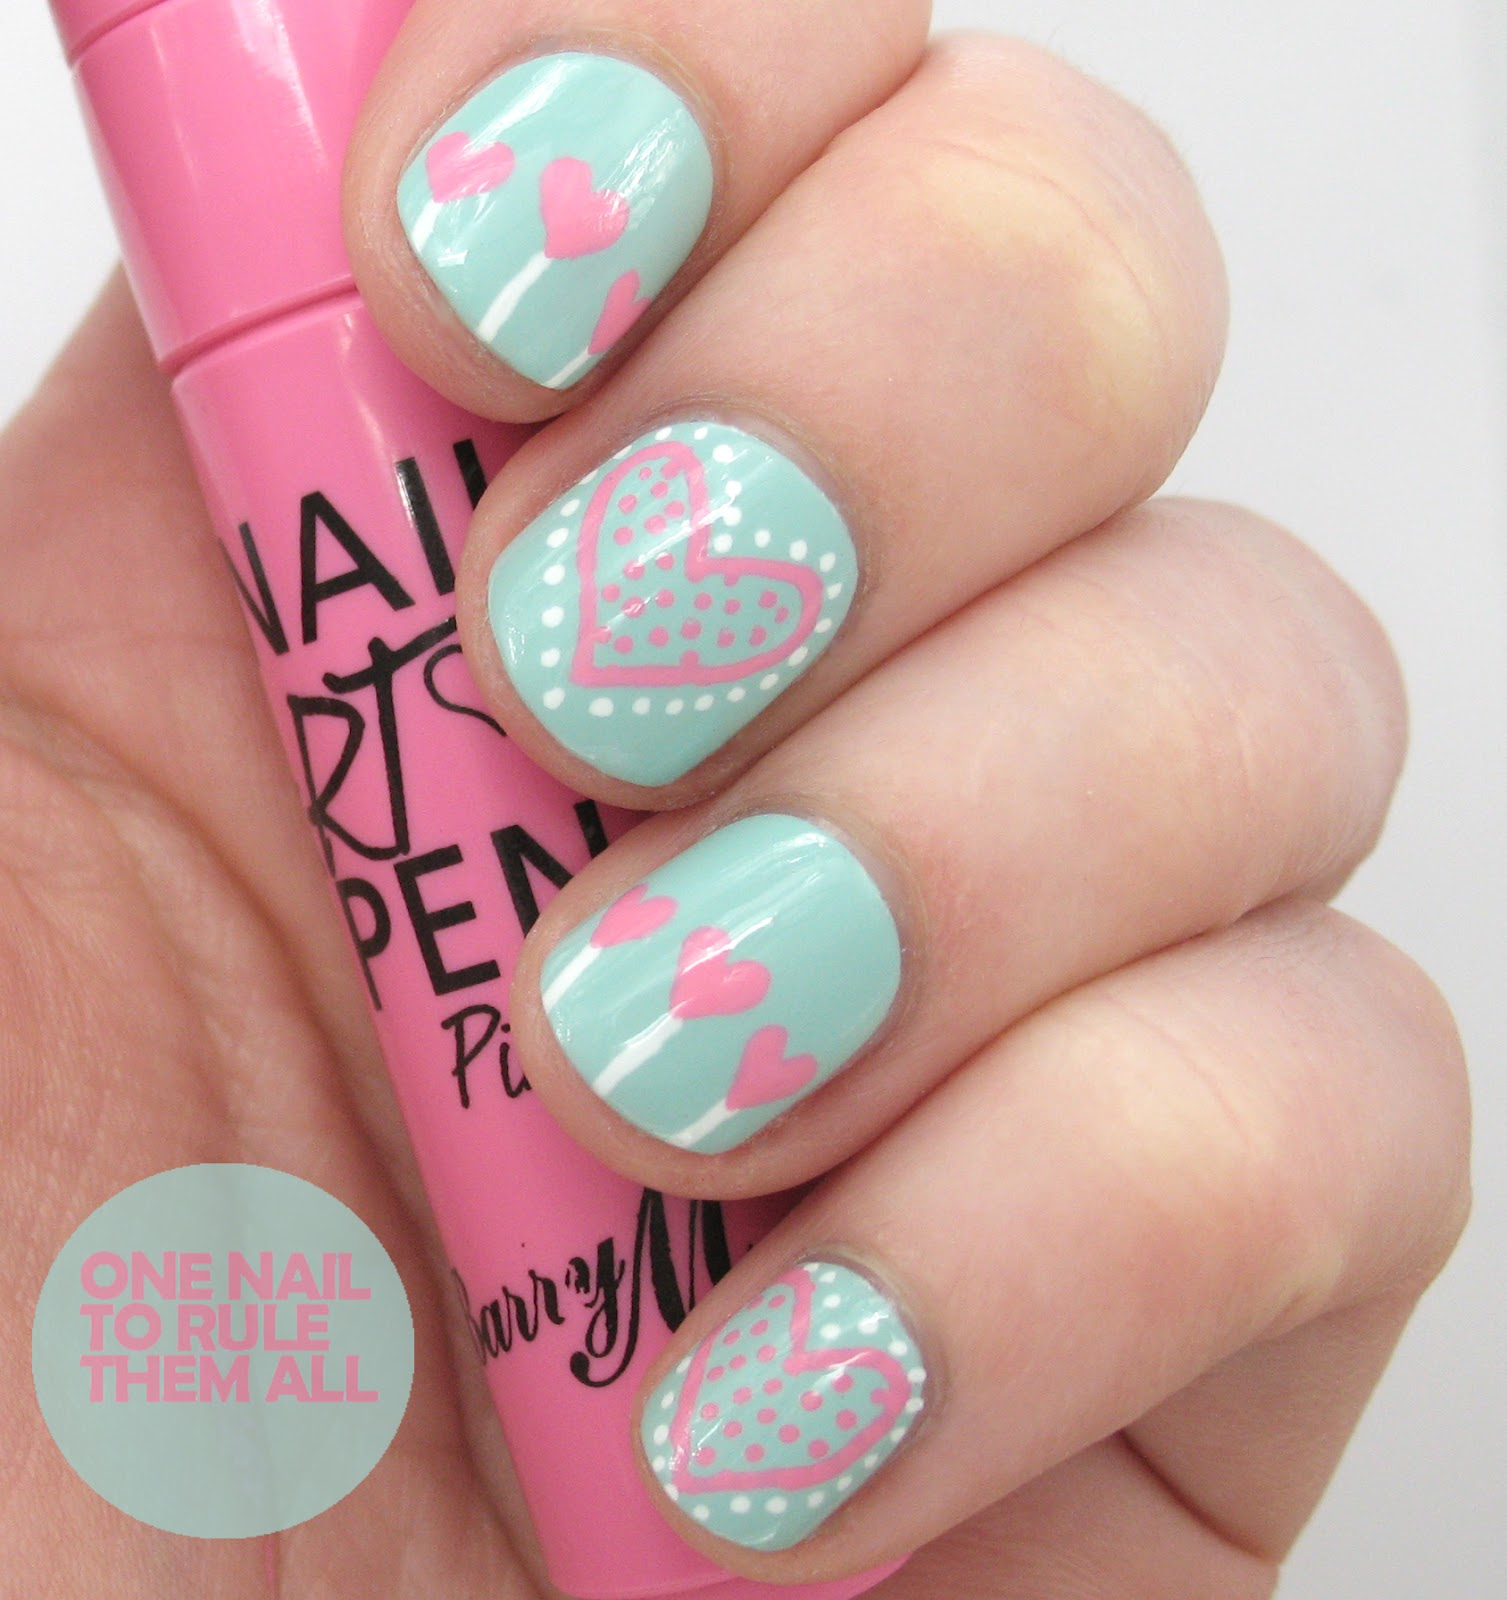 Pics Of Nail Art: One Nail To Rule Them All: Barry M Nail Art Pens Review